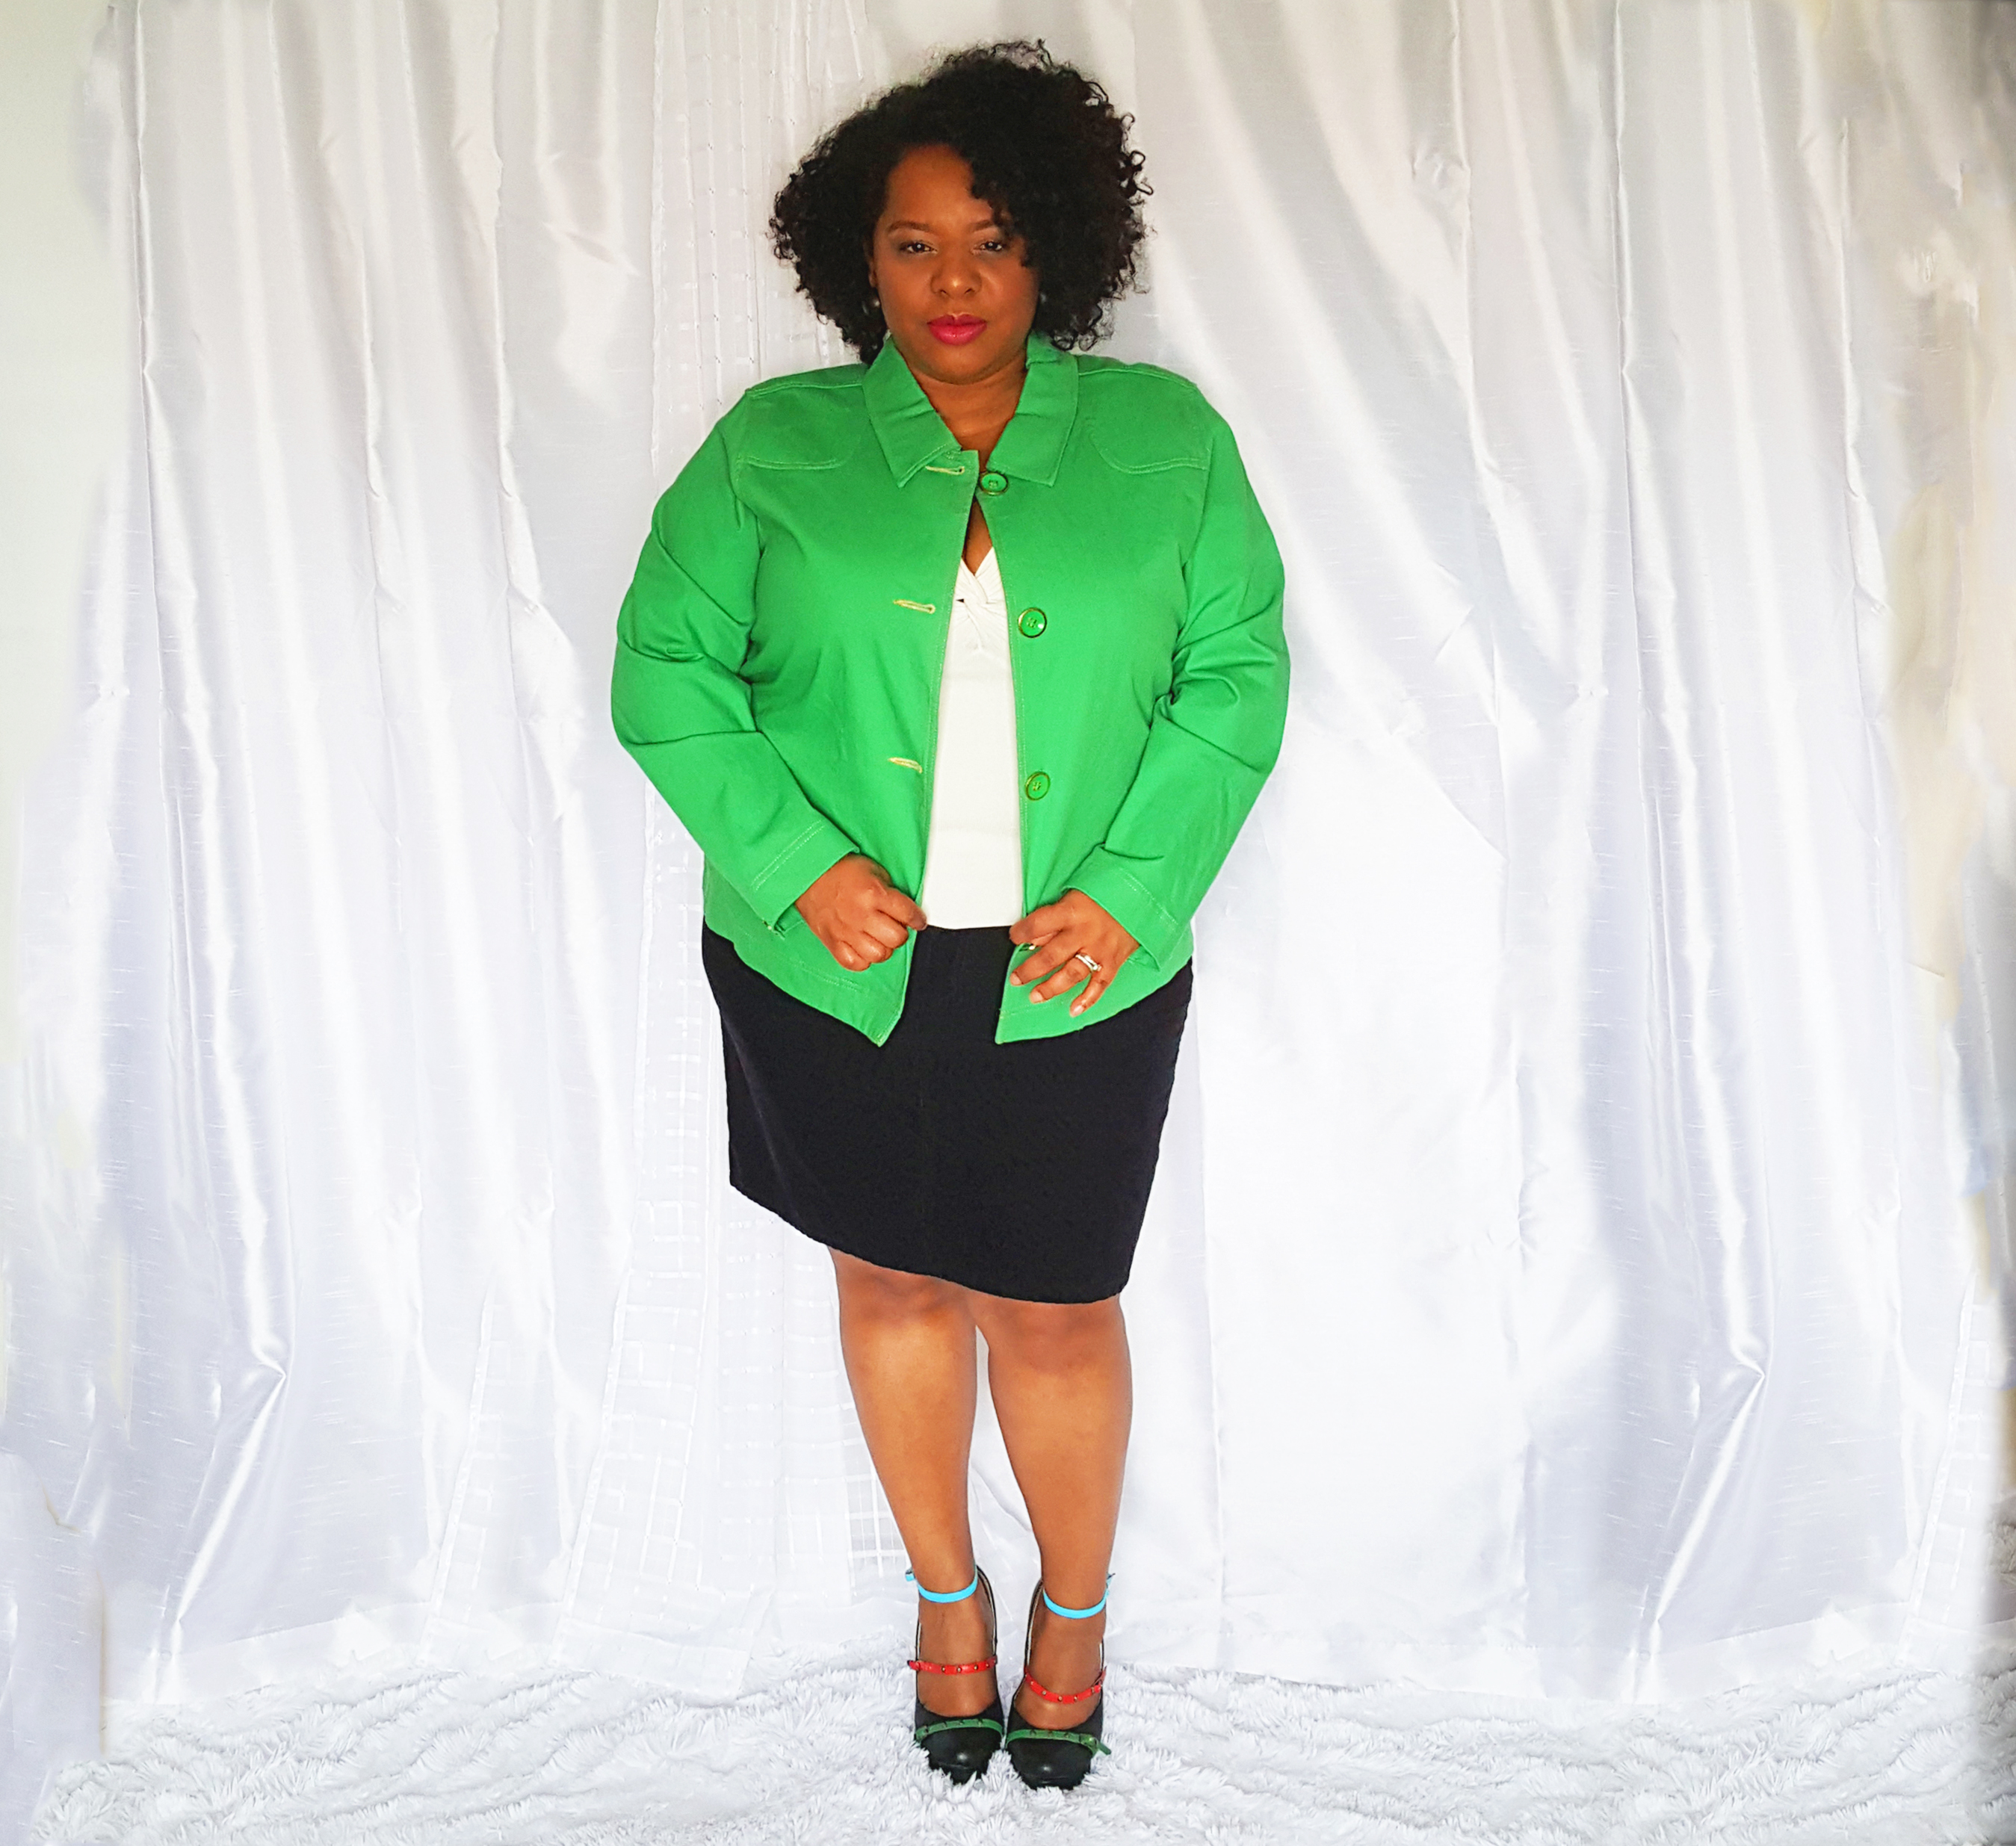 Green Jacket Black Skirt2